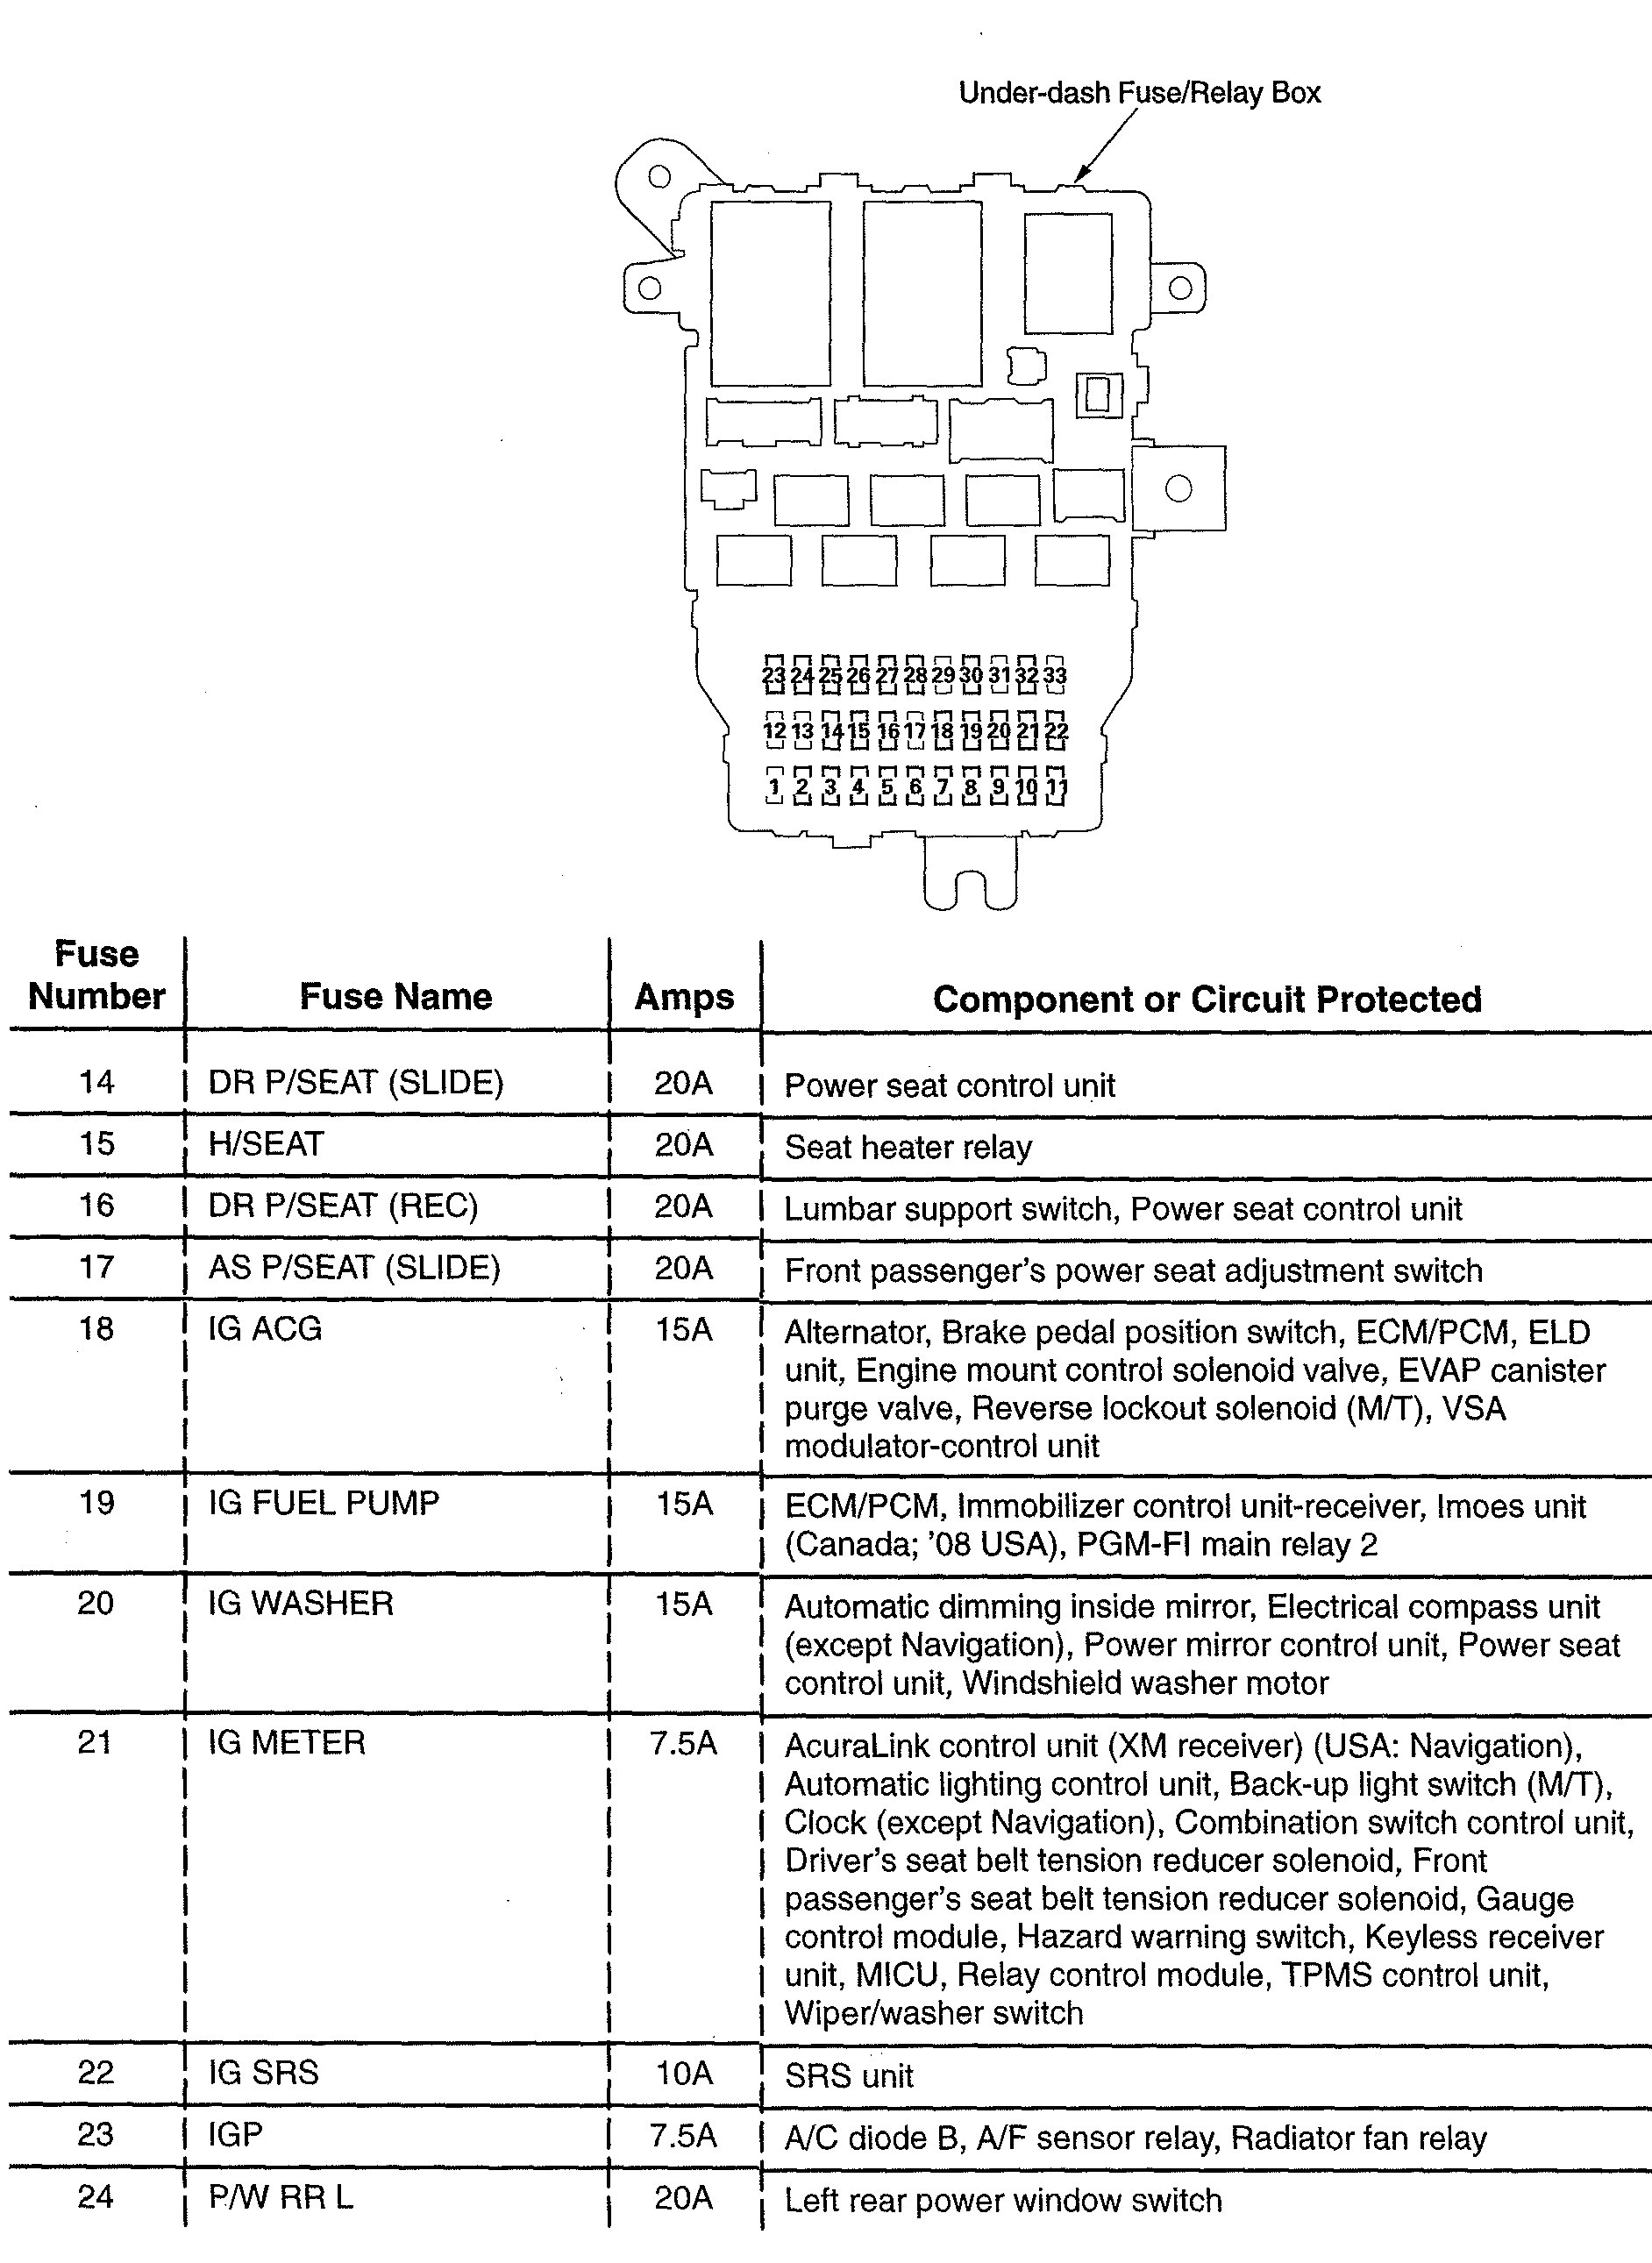 acura tl wiring diagram fuse panel 2 2008 acura tl (2008) wiring diagrams fuse panel carknowledge 2007 acura tl wiring diagram at crackthecode.co